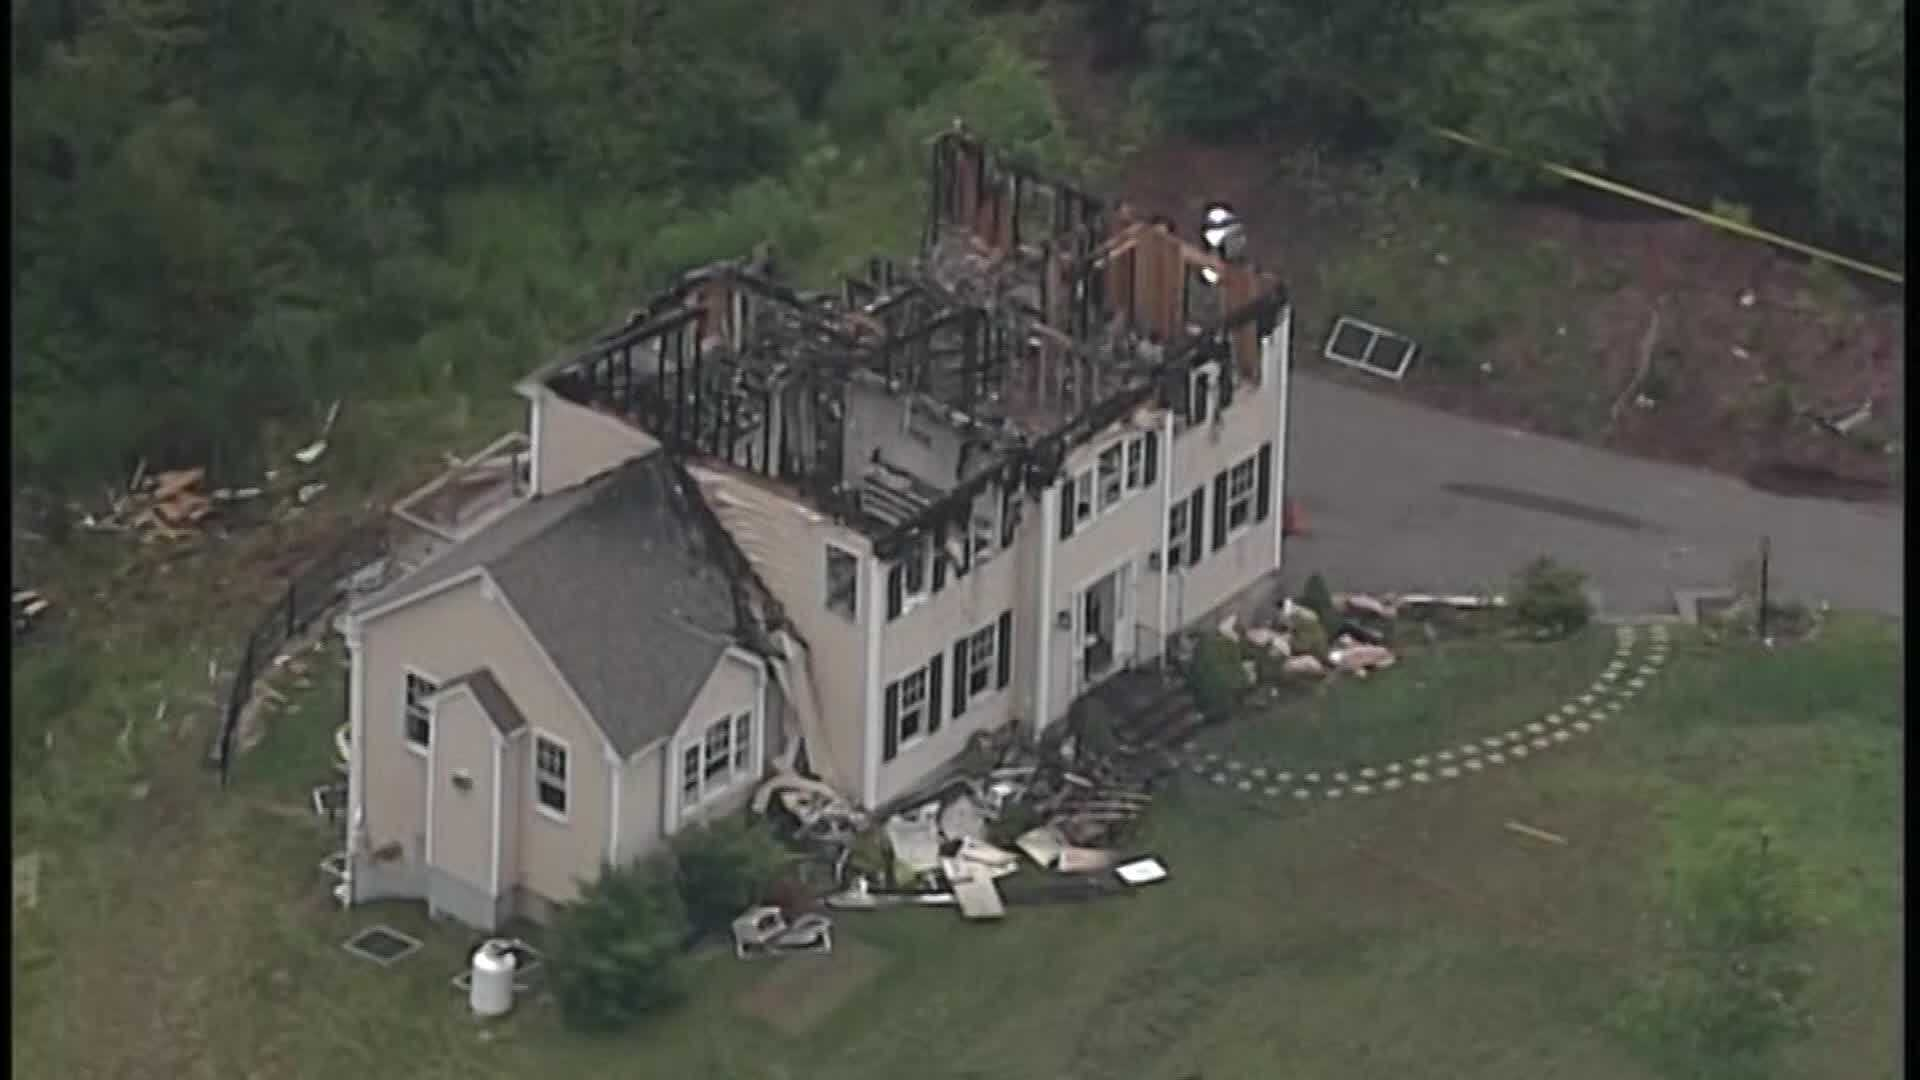 The pilot of a small plane that crashed into a Massachusetts home over the weekend, killing all three people on board, calmly told an air traffic controller he has no engine power and is gliding in the minutes before impact.